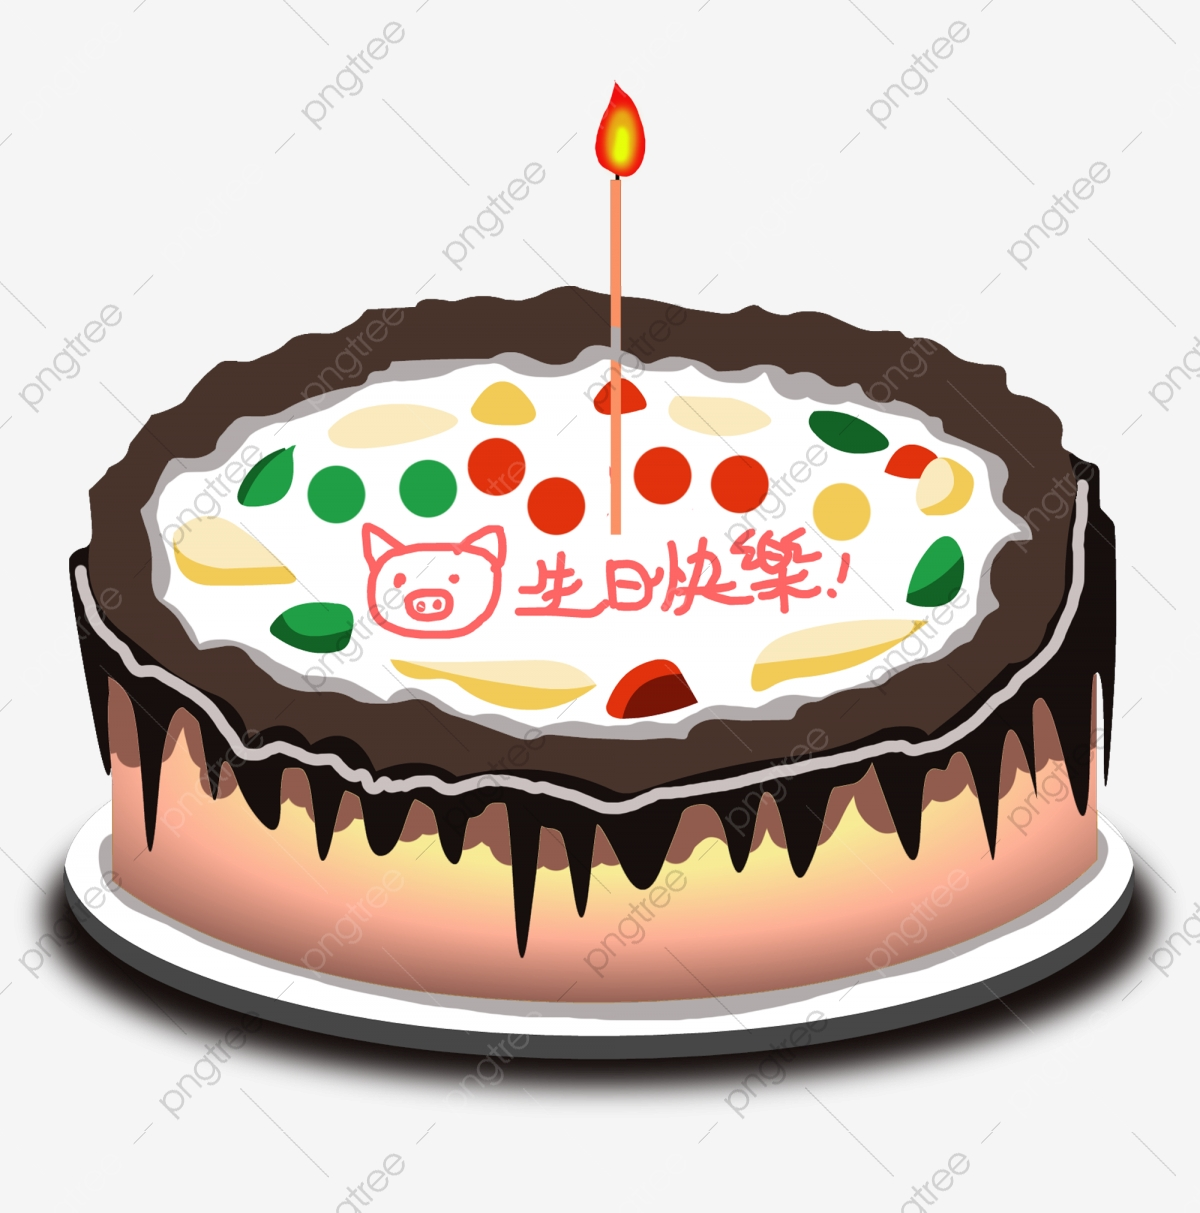 Groovy Cake Cake With Candles Cute Pig Happy Birthday Cake Chocolate Cake Funny Birthday Cards Online Aboleapandamsfinfo